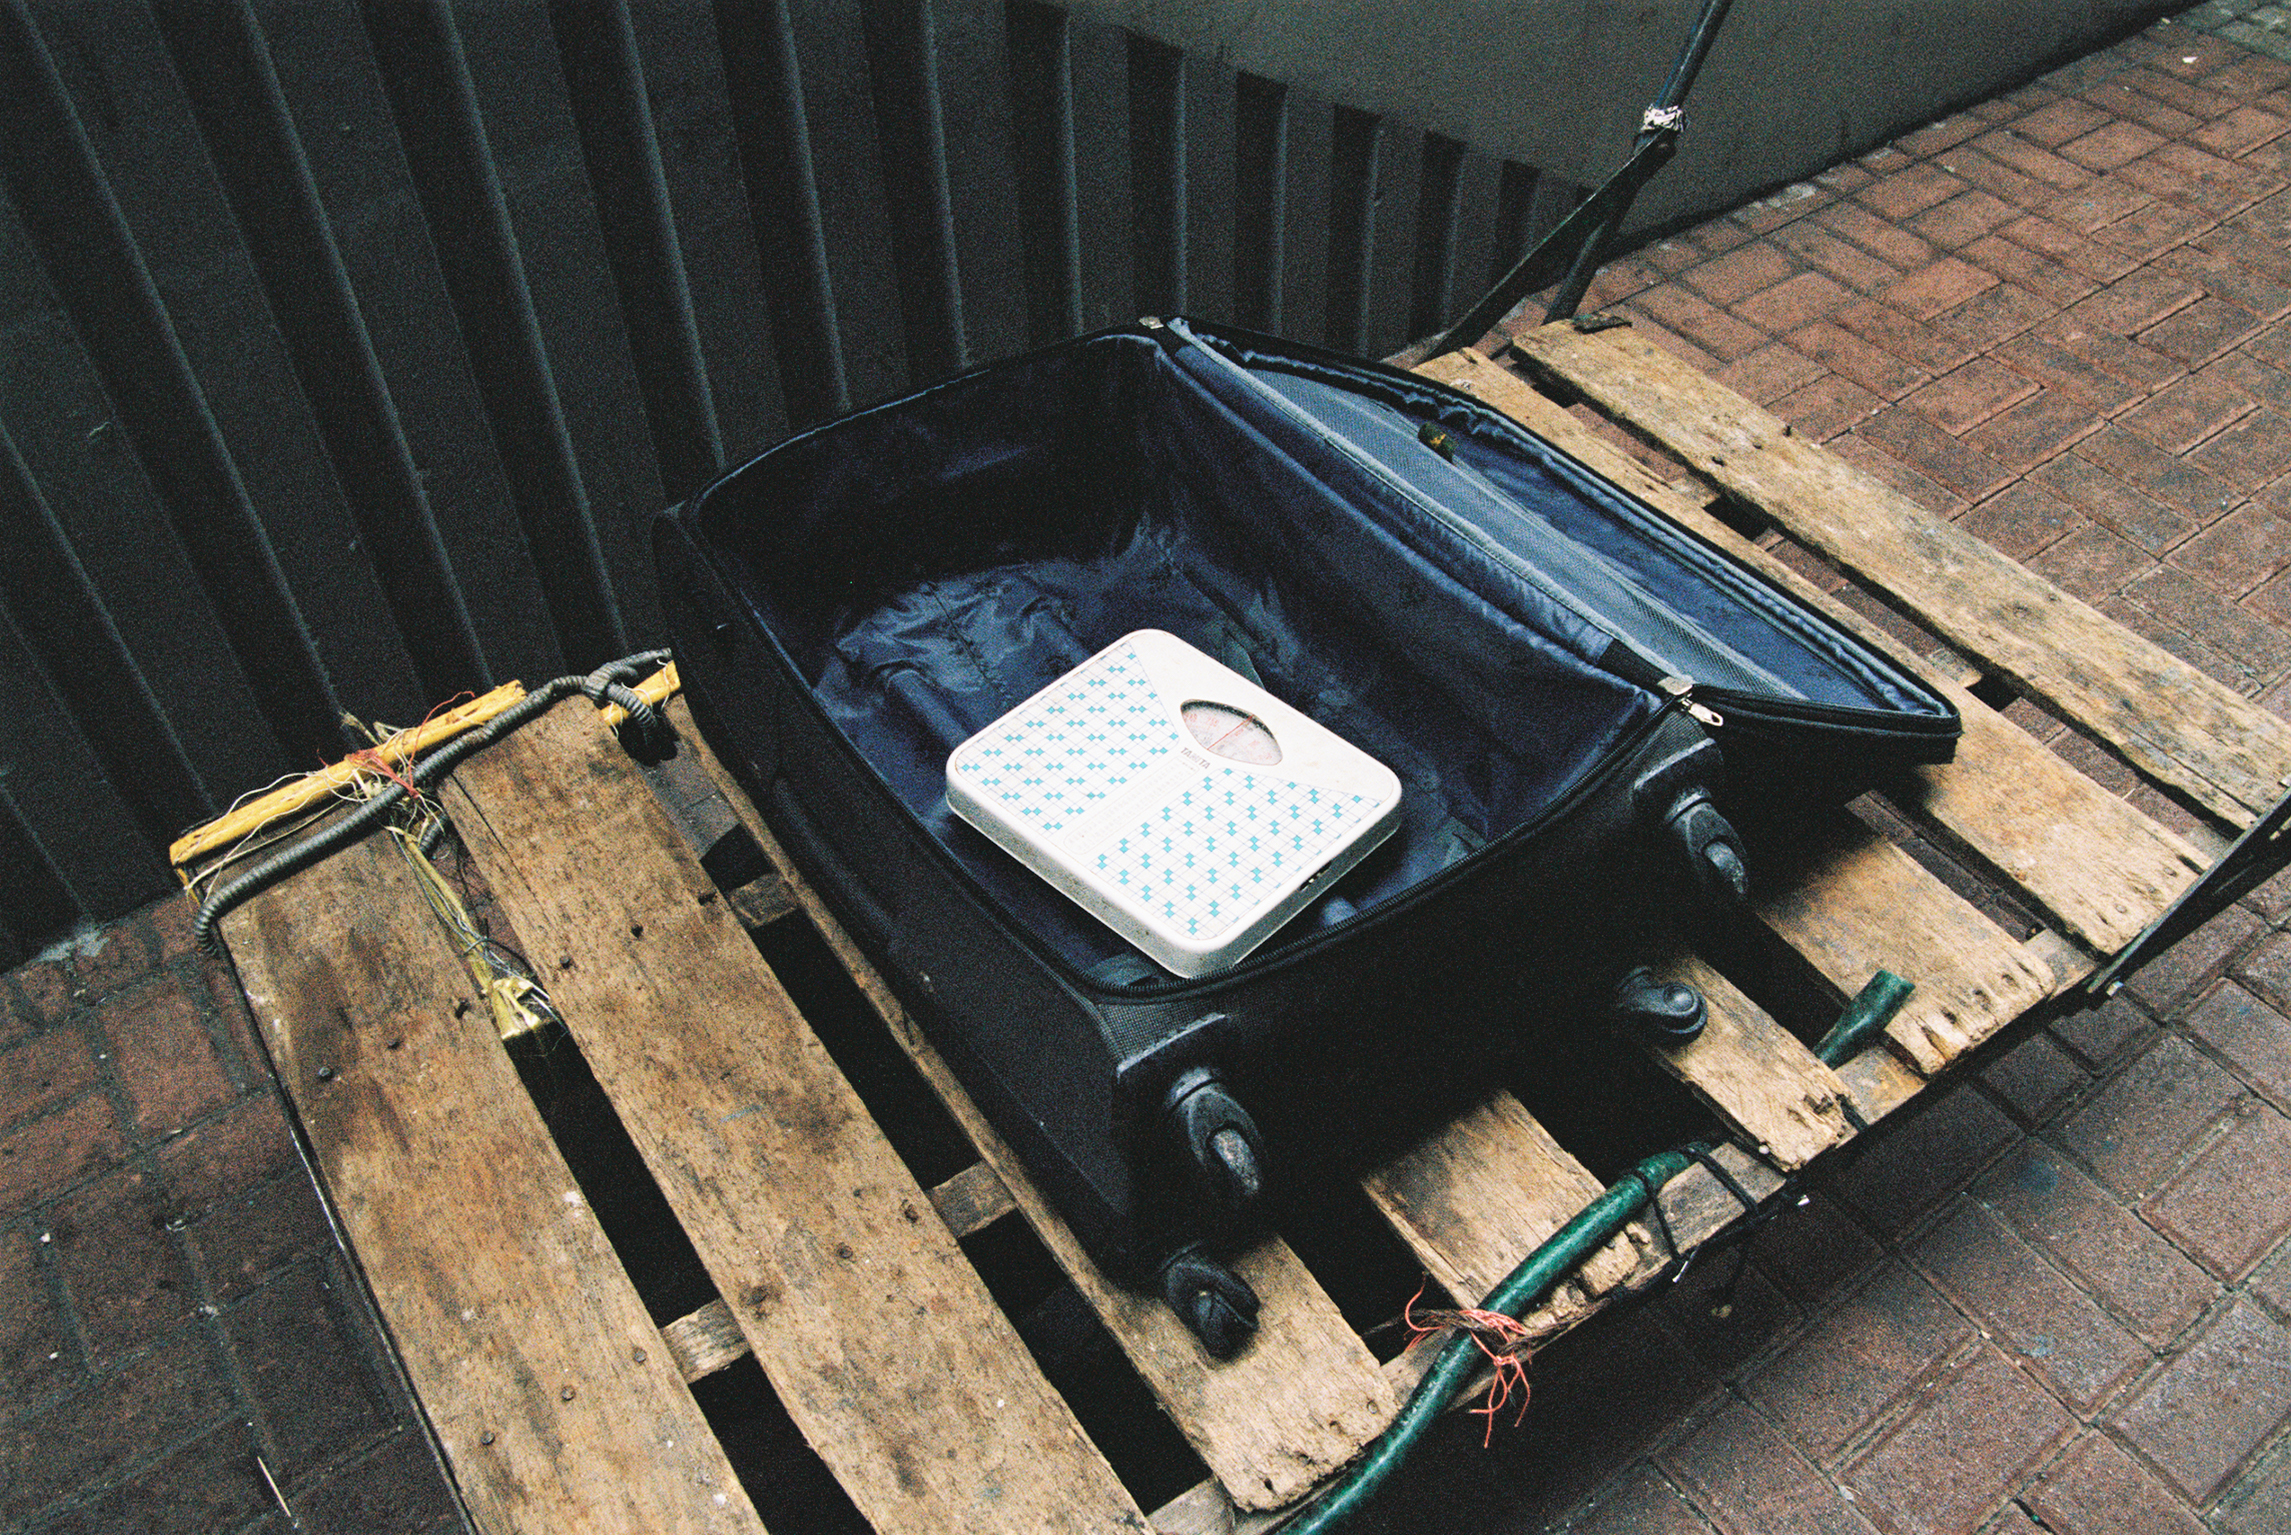 A Scale, In a Suitcase, On a Crate